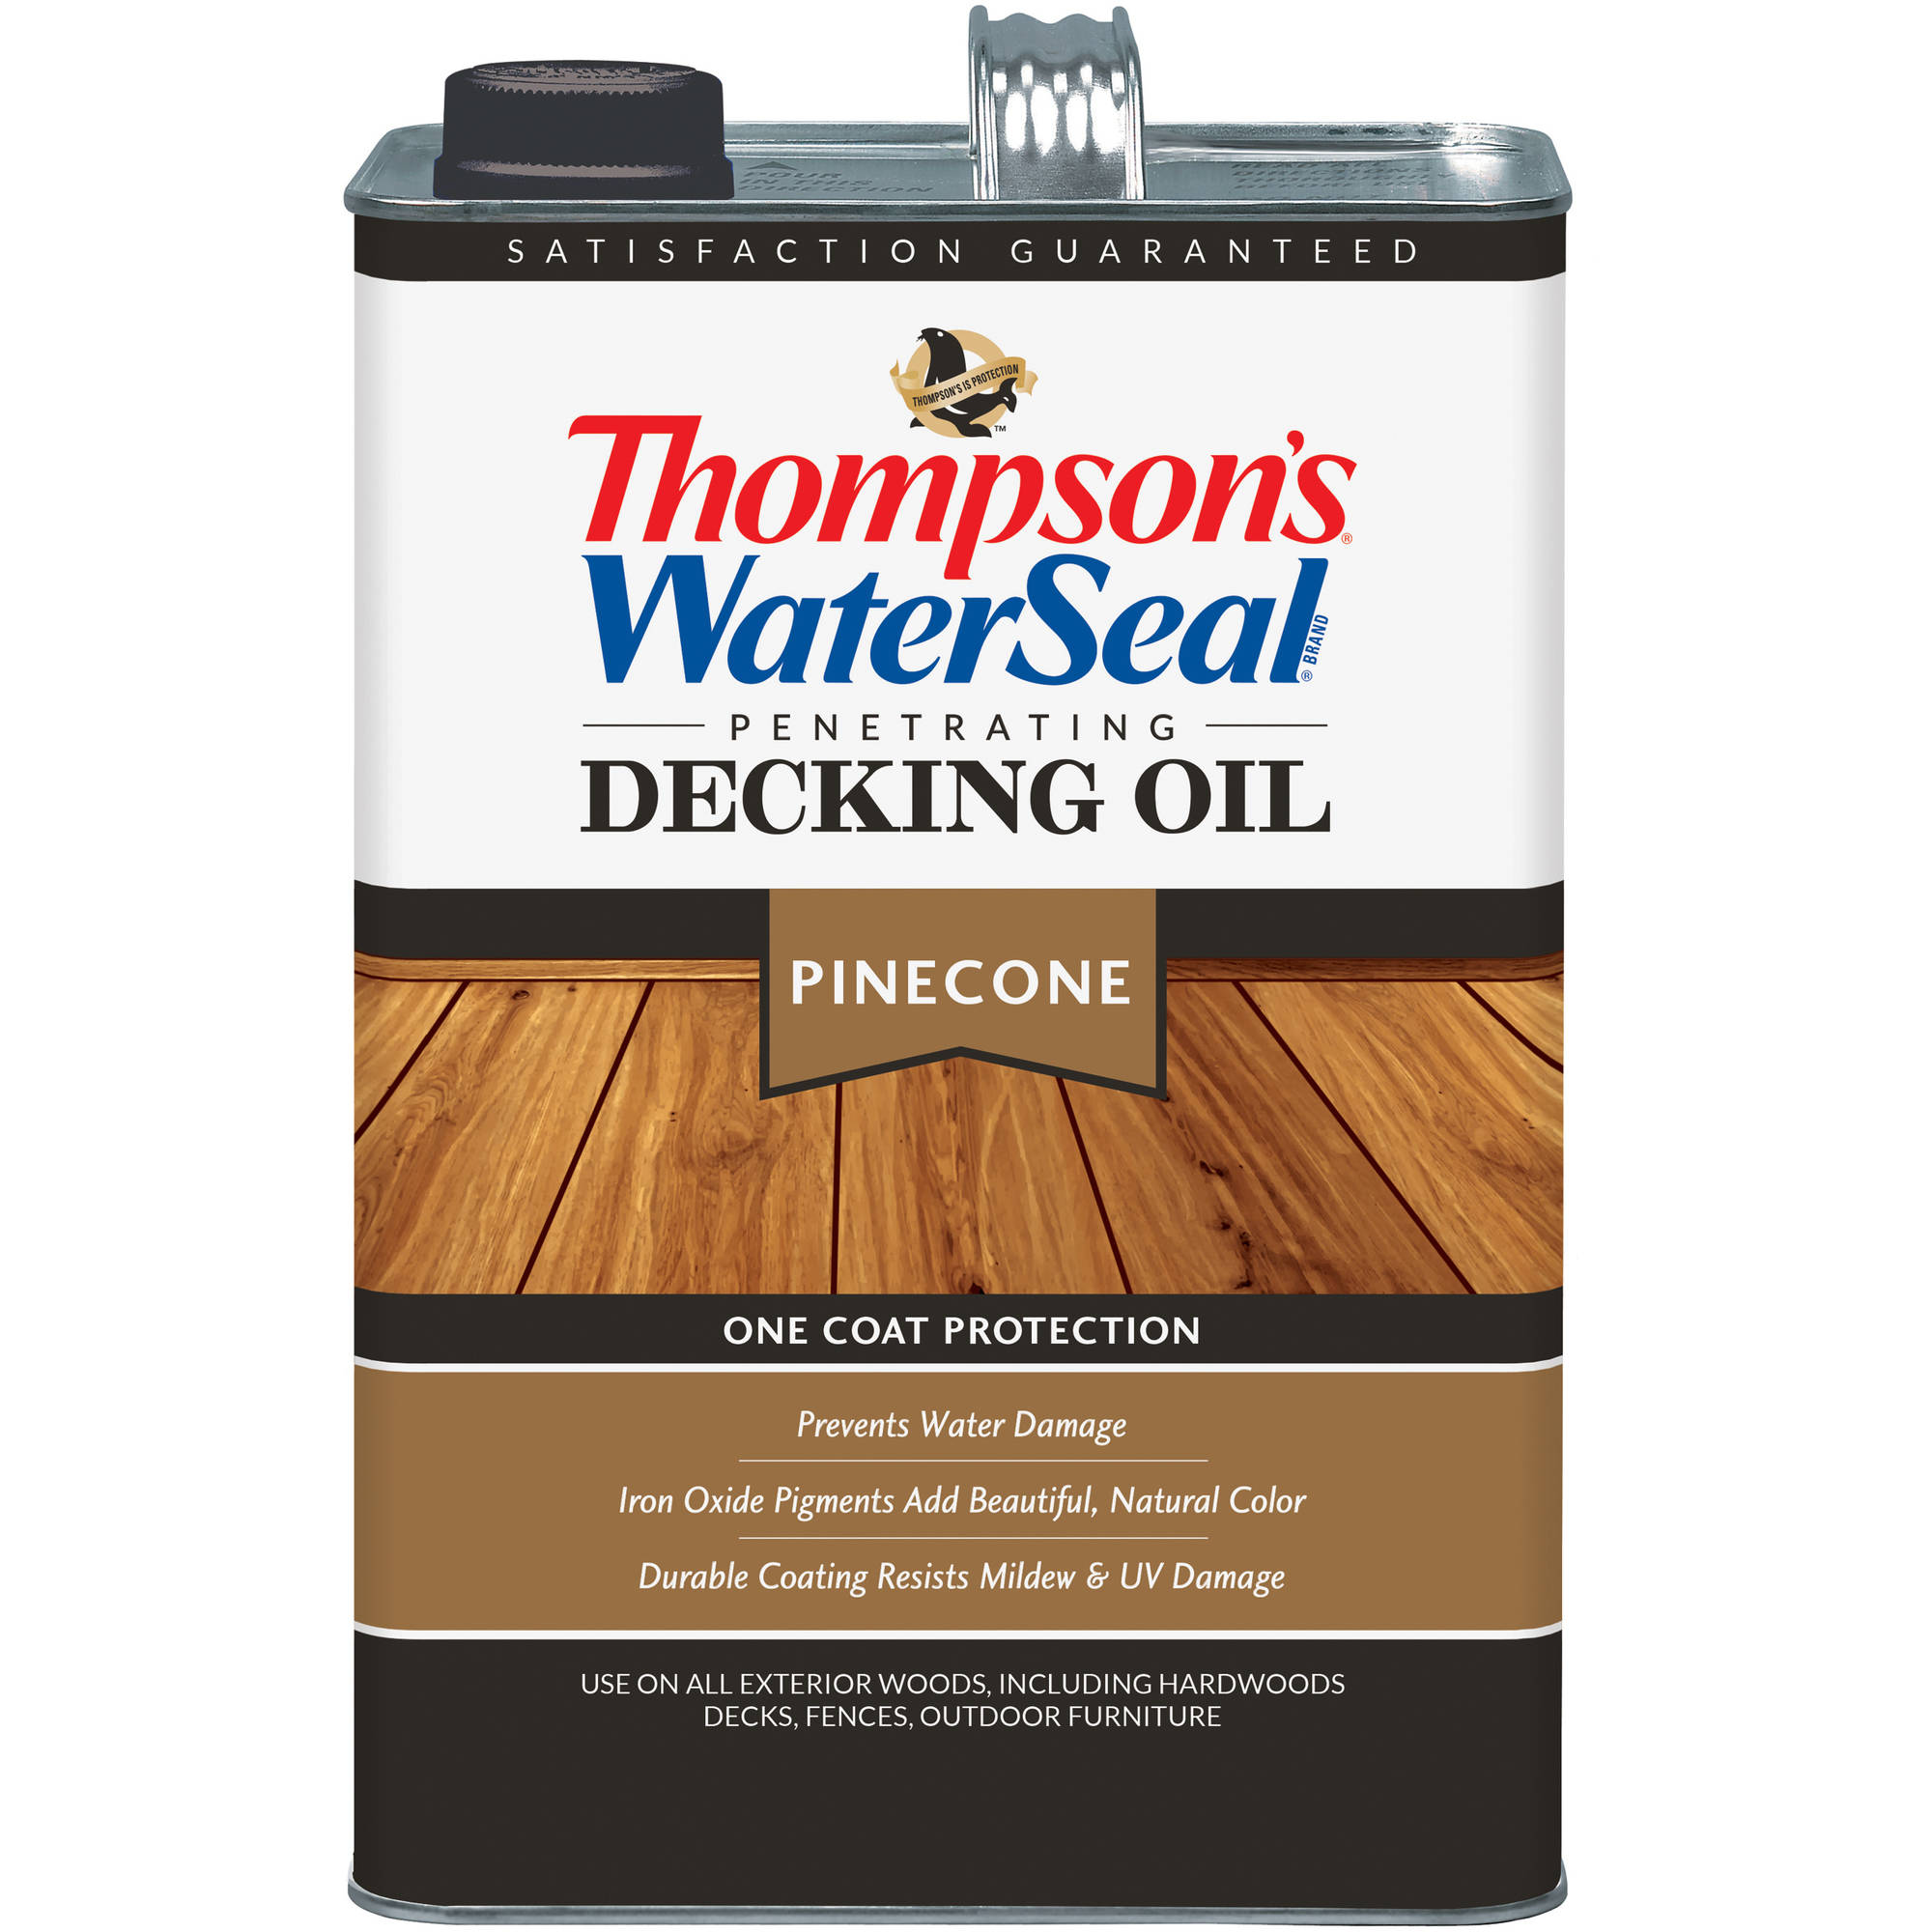 Thompson's WaterSeal Clear Waterproofer Plus Masonry Protector, 1 gal by Sherwin-Williams